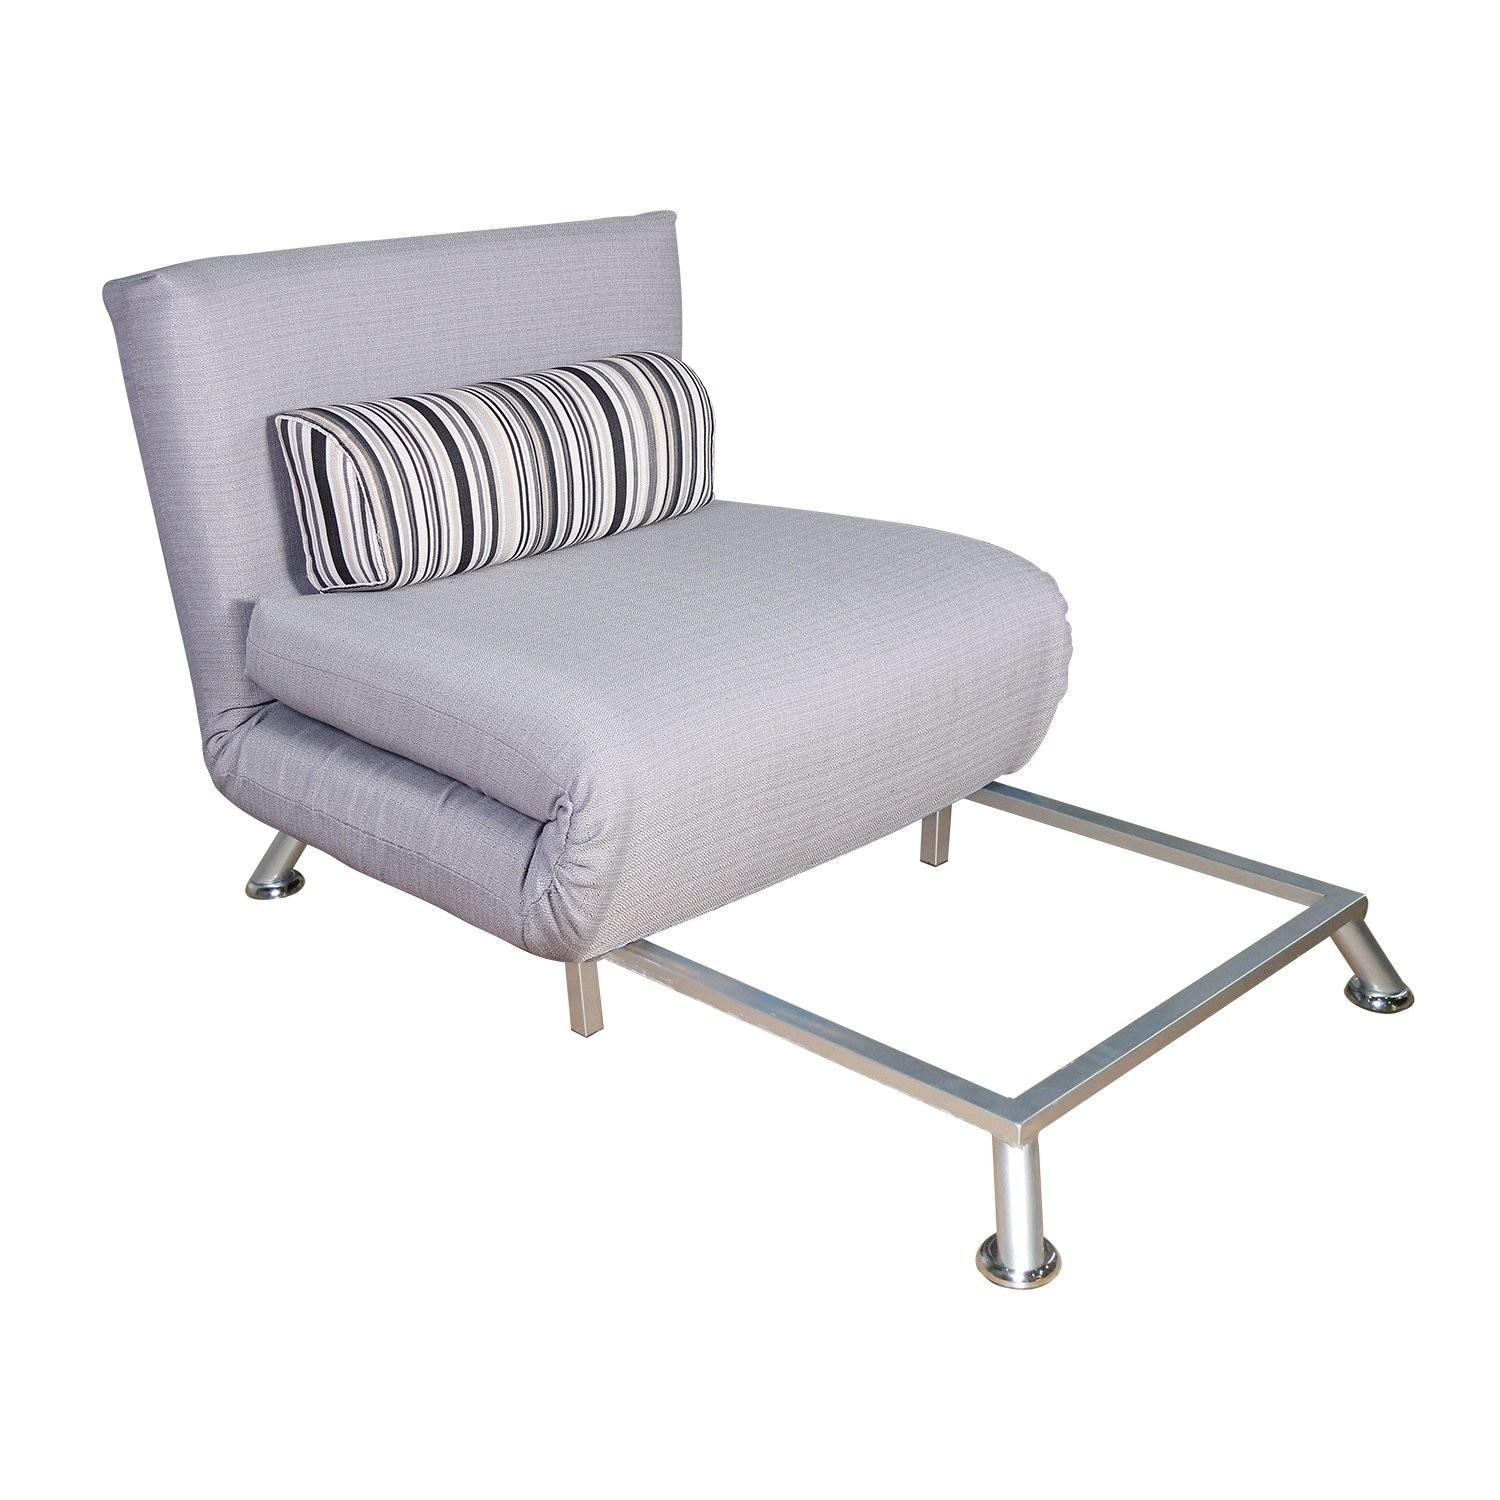 20+ Choices of Single Sofa Bed Chairs